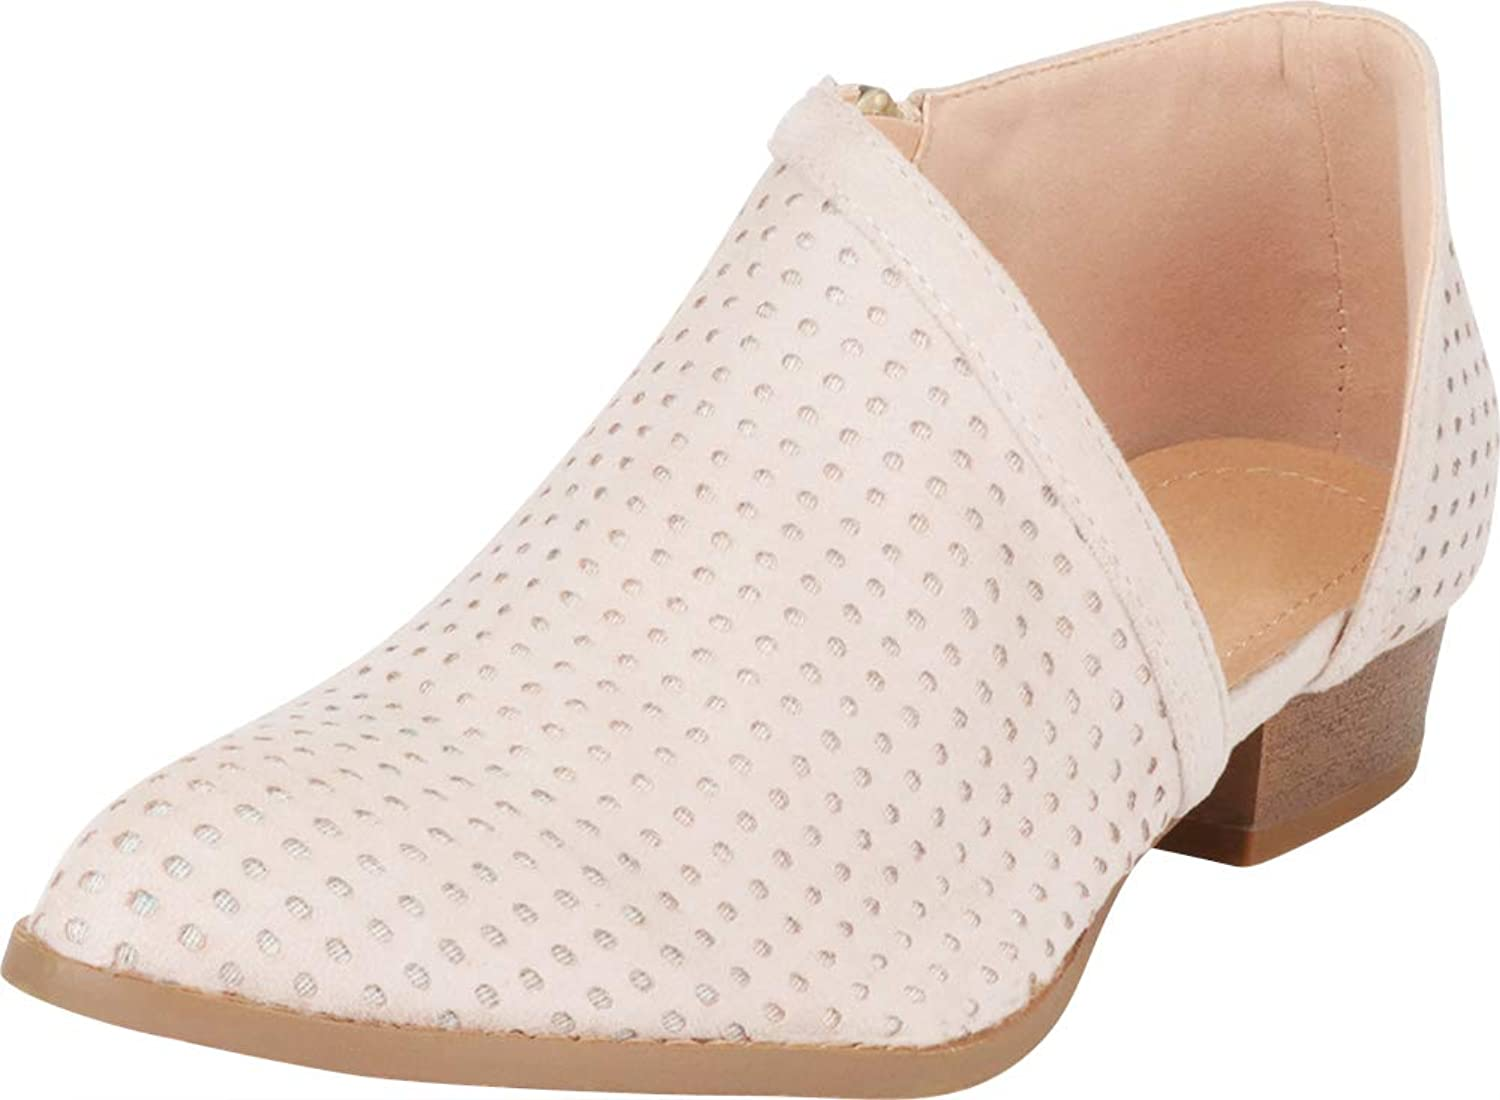 Cambridge Select Women's Pointed Toe Open Shank Side Cutout Perforated Shootie Ankle Bootie